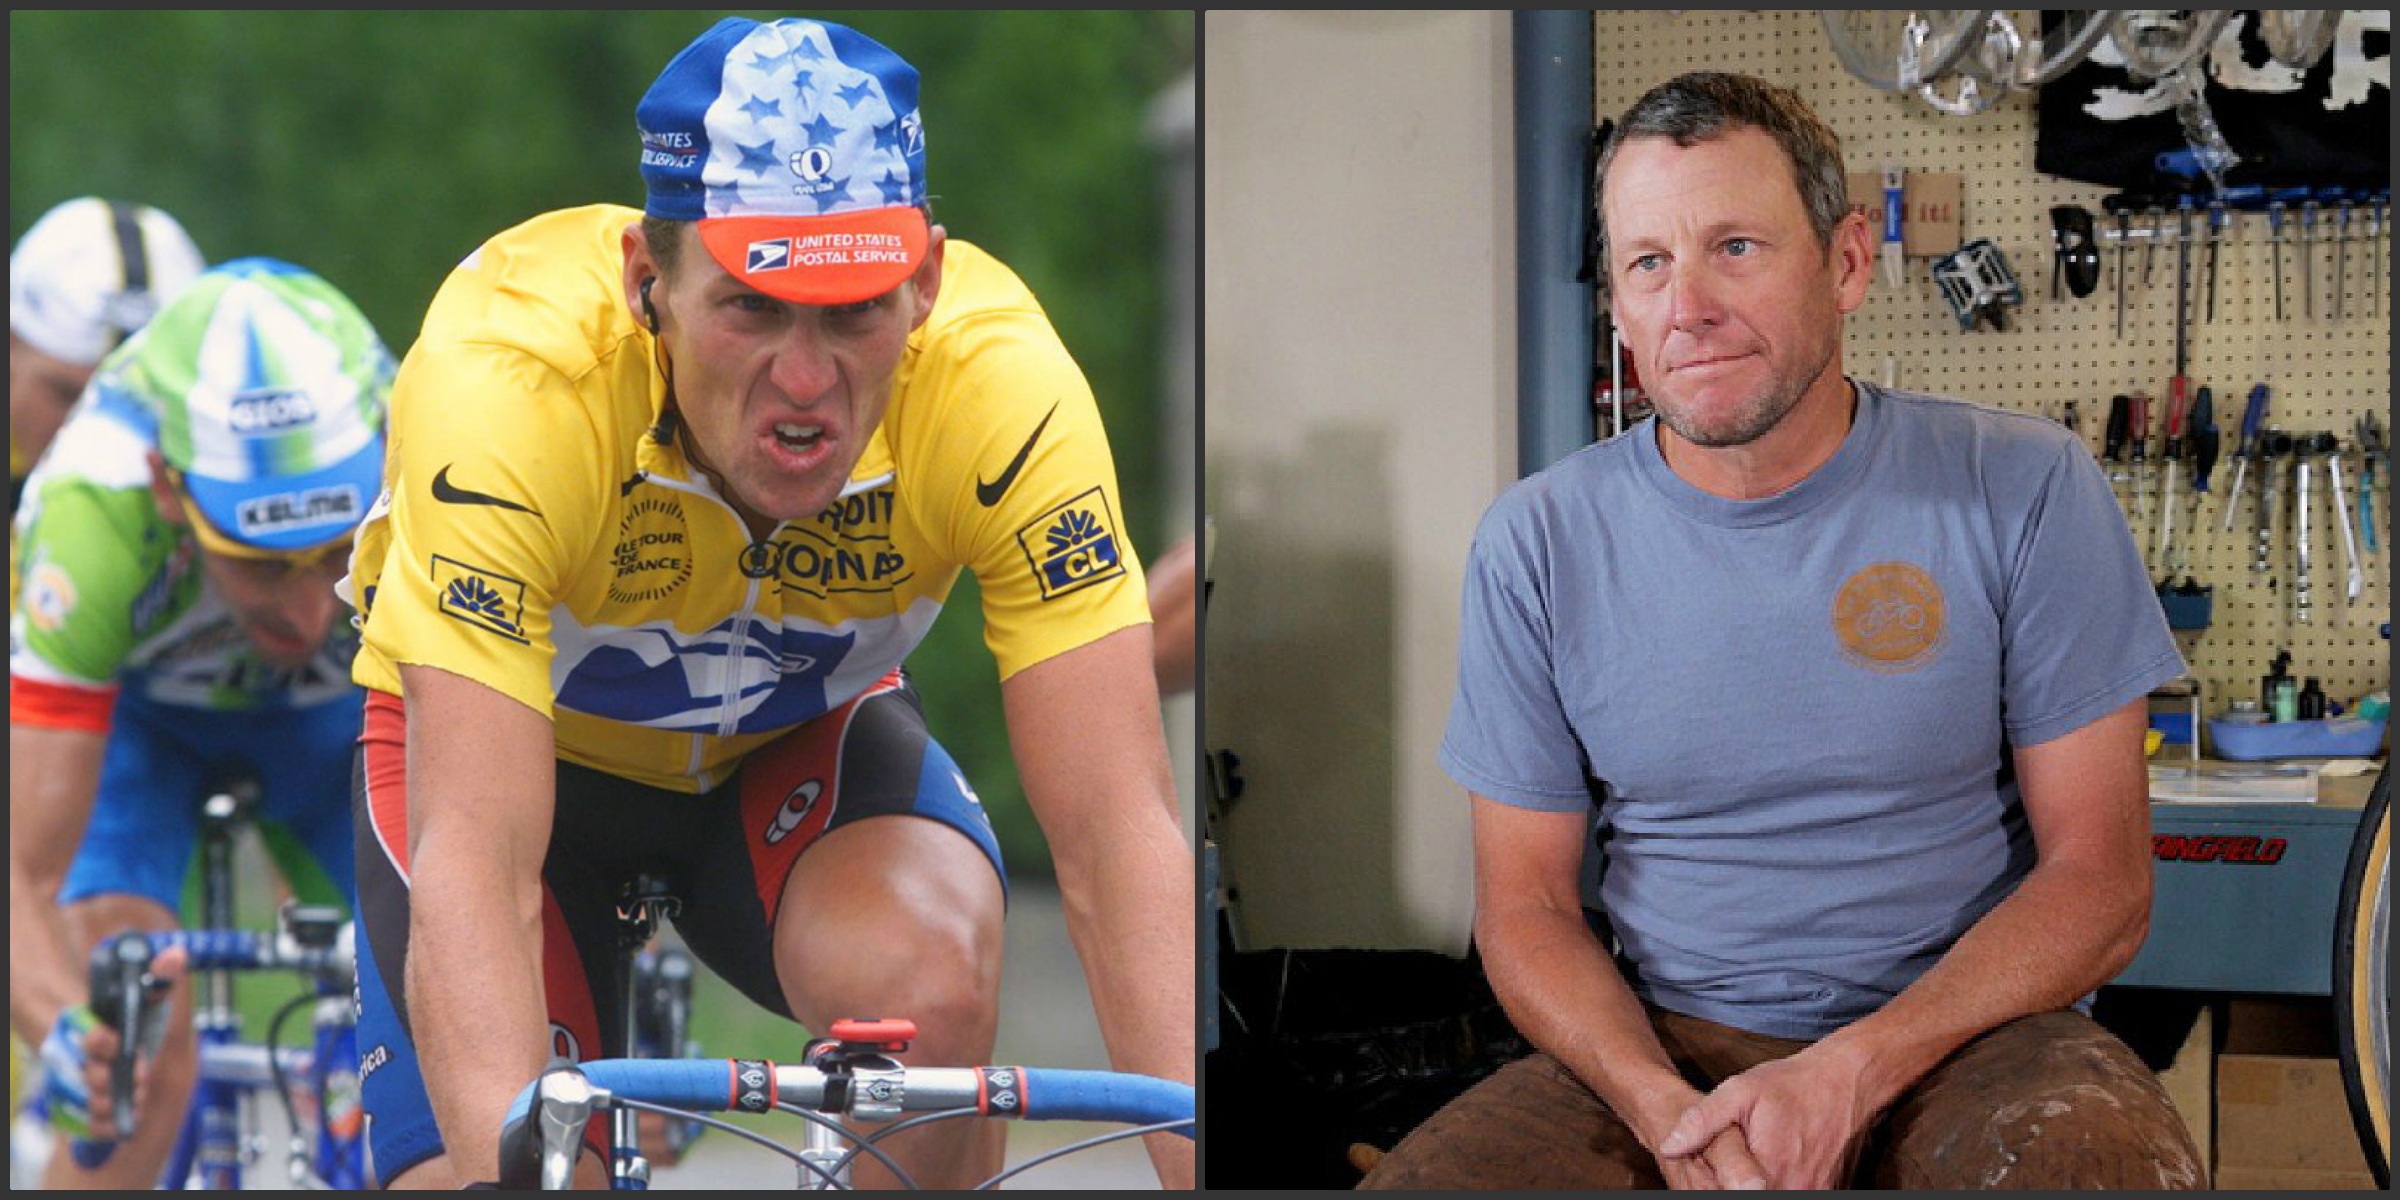 What Type of Cancer Did Lance Armstrong Have?